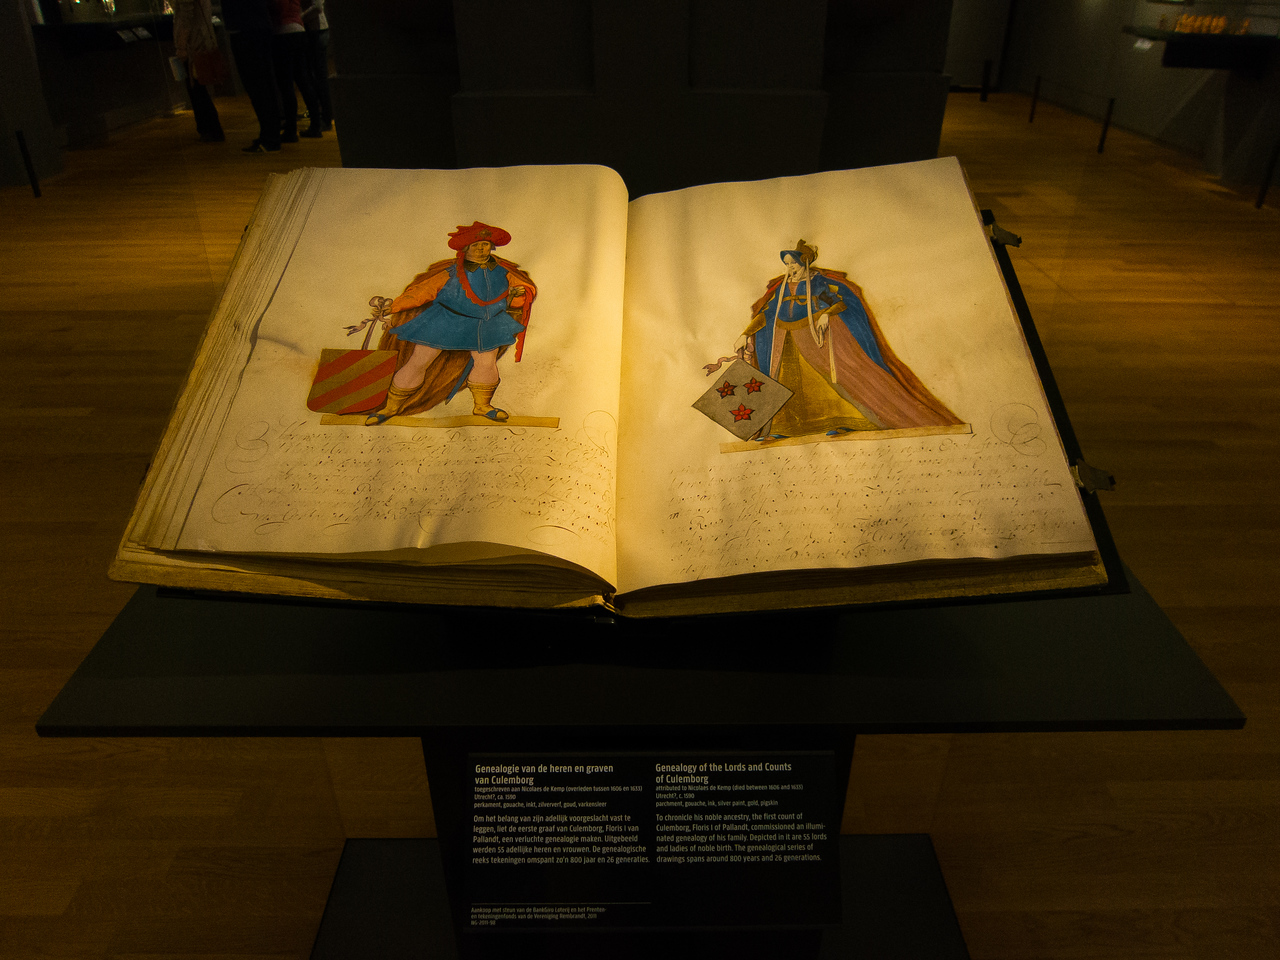 An illustrated geneology of the Lords and Counts of Culemborg with 26 generations spanning 800 years at the Rijksmuseum. I'm still working on mine...